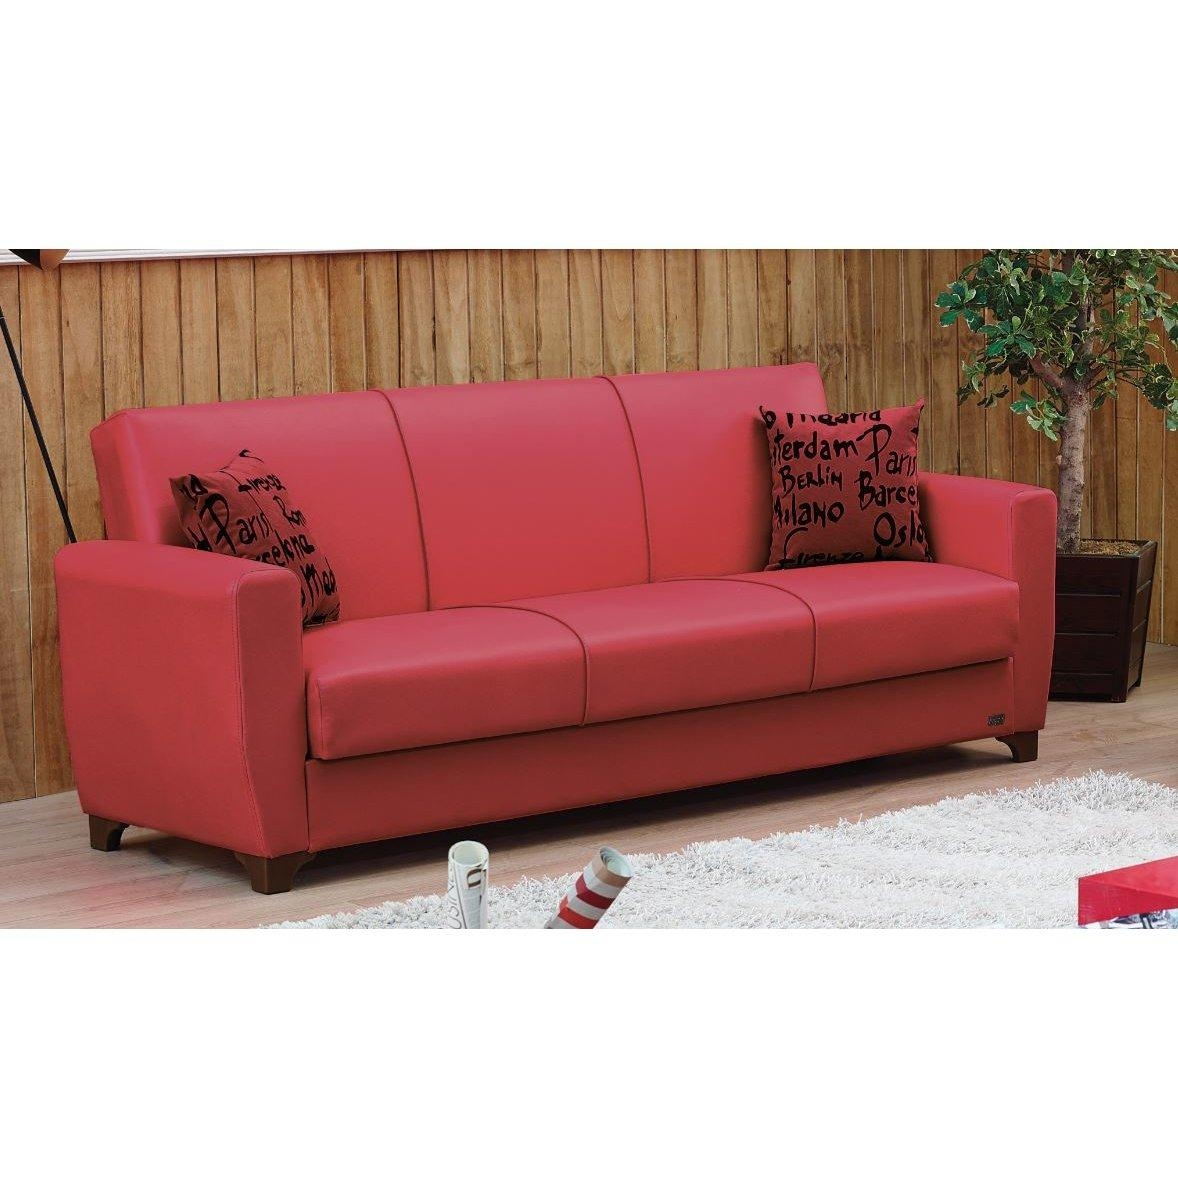 Beyan Dallas Sleeper Sofa | Wayfair Supply Regarding Dallas Sleeper Sofas (Image 3 of 20)